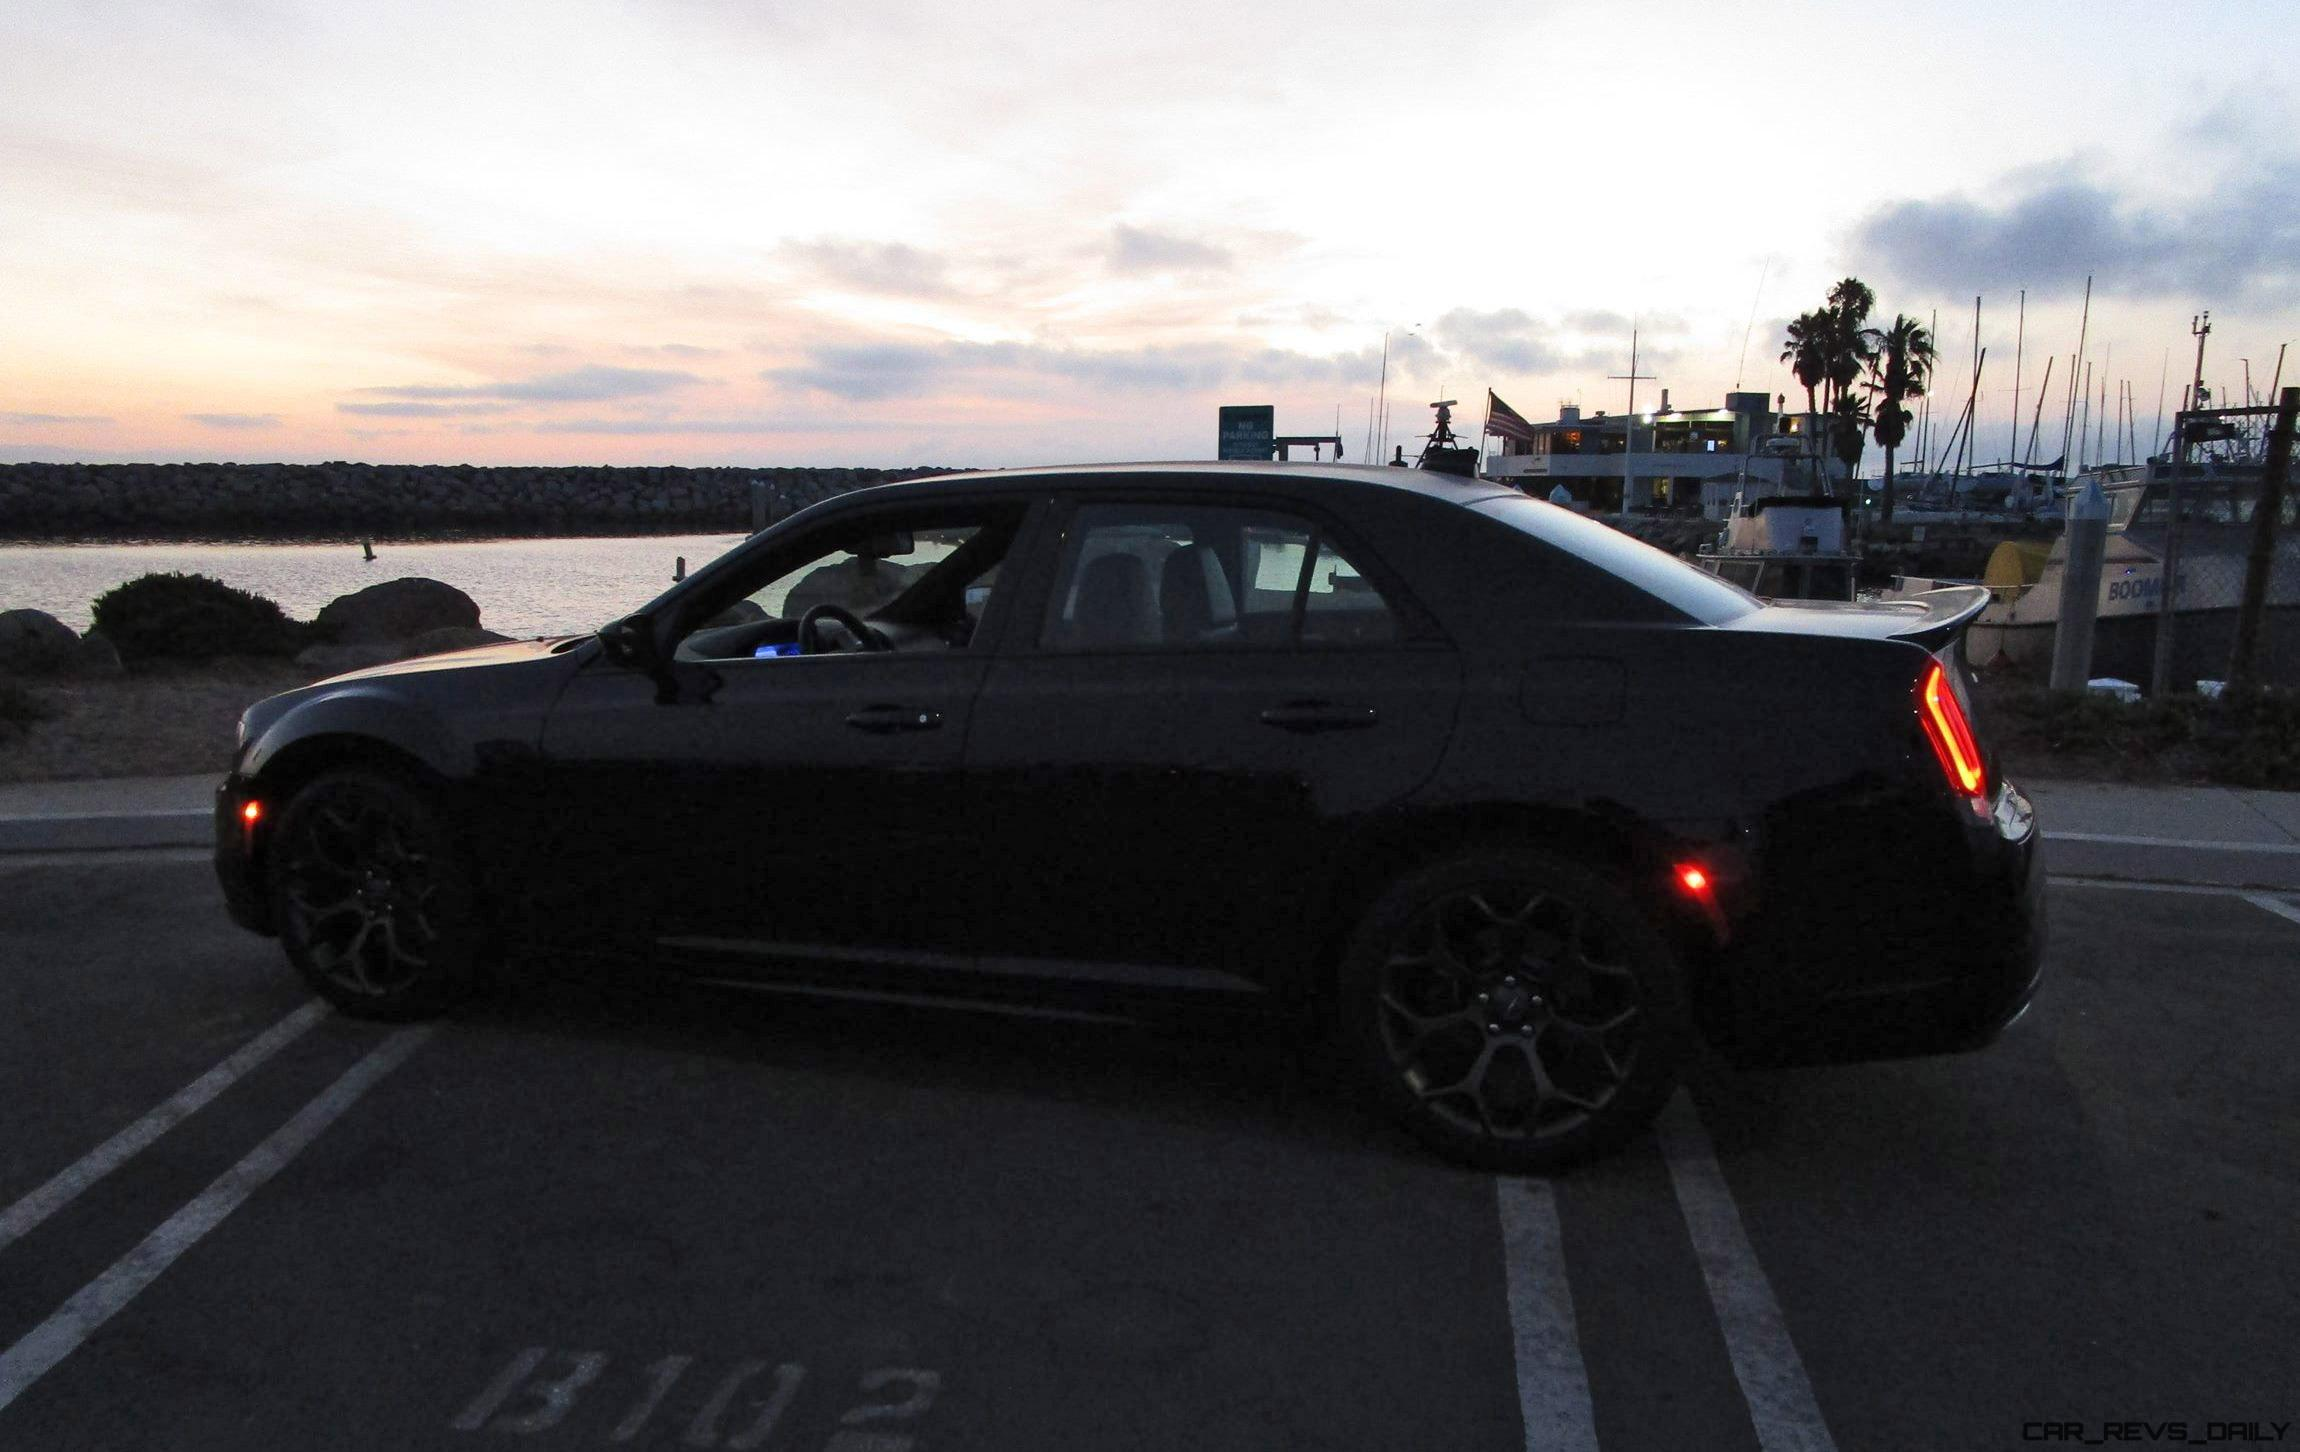 2016 Chrysler 300s Road Test Review By Ben Lewis 2005 300 Owners Manual